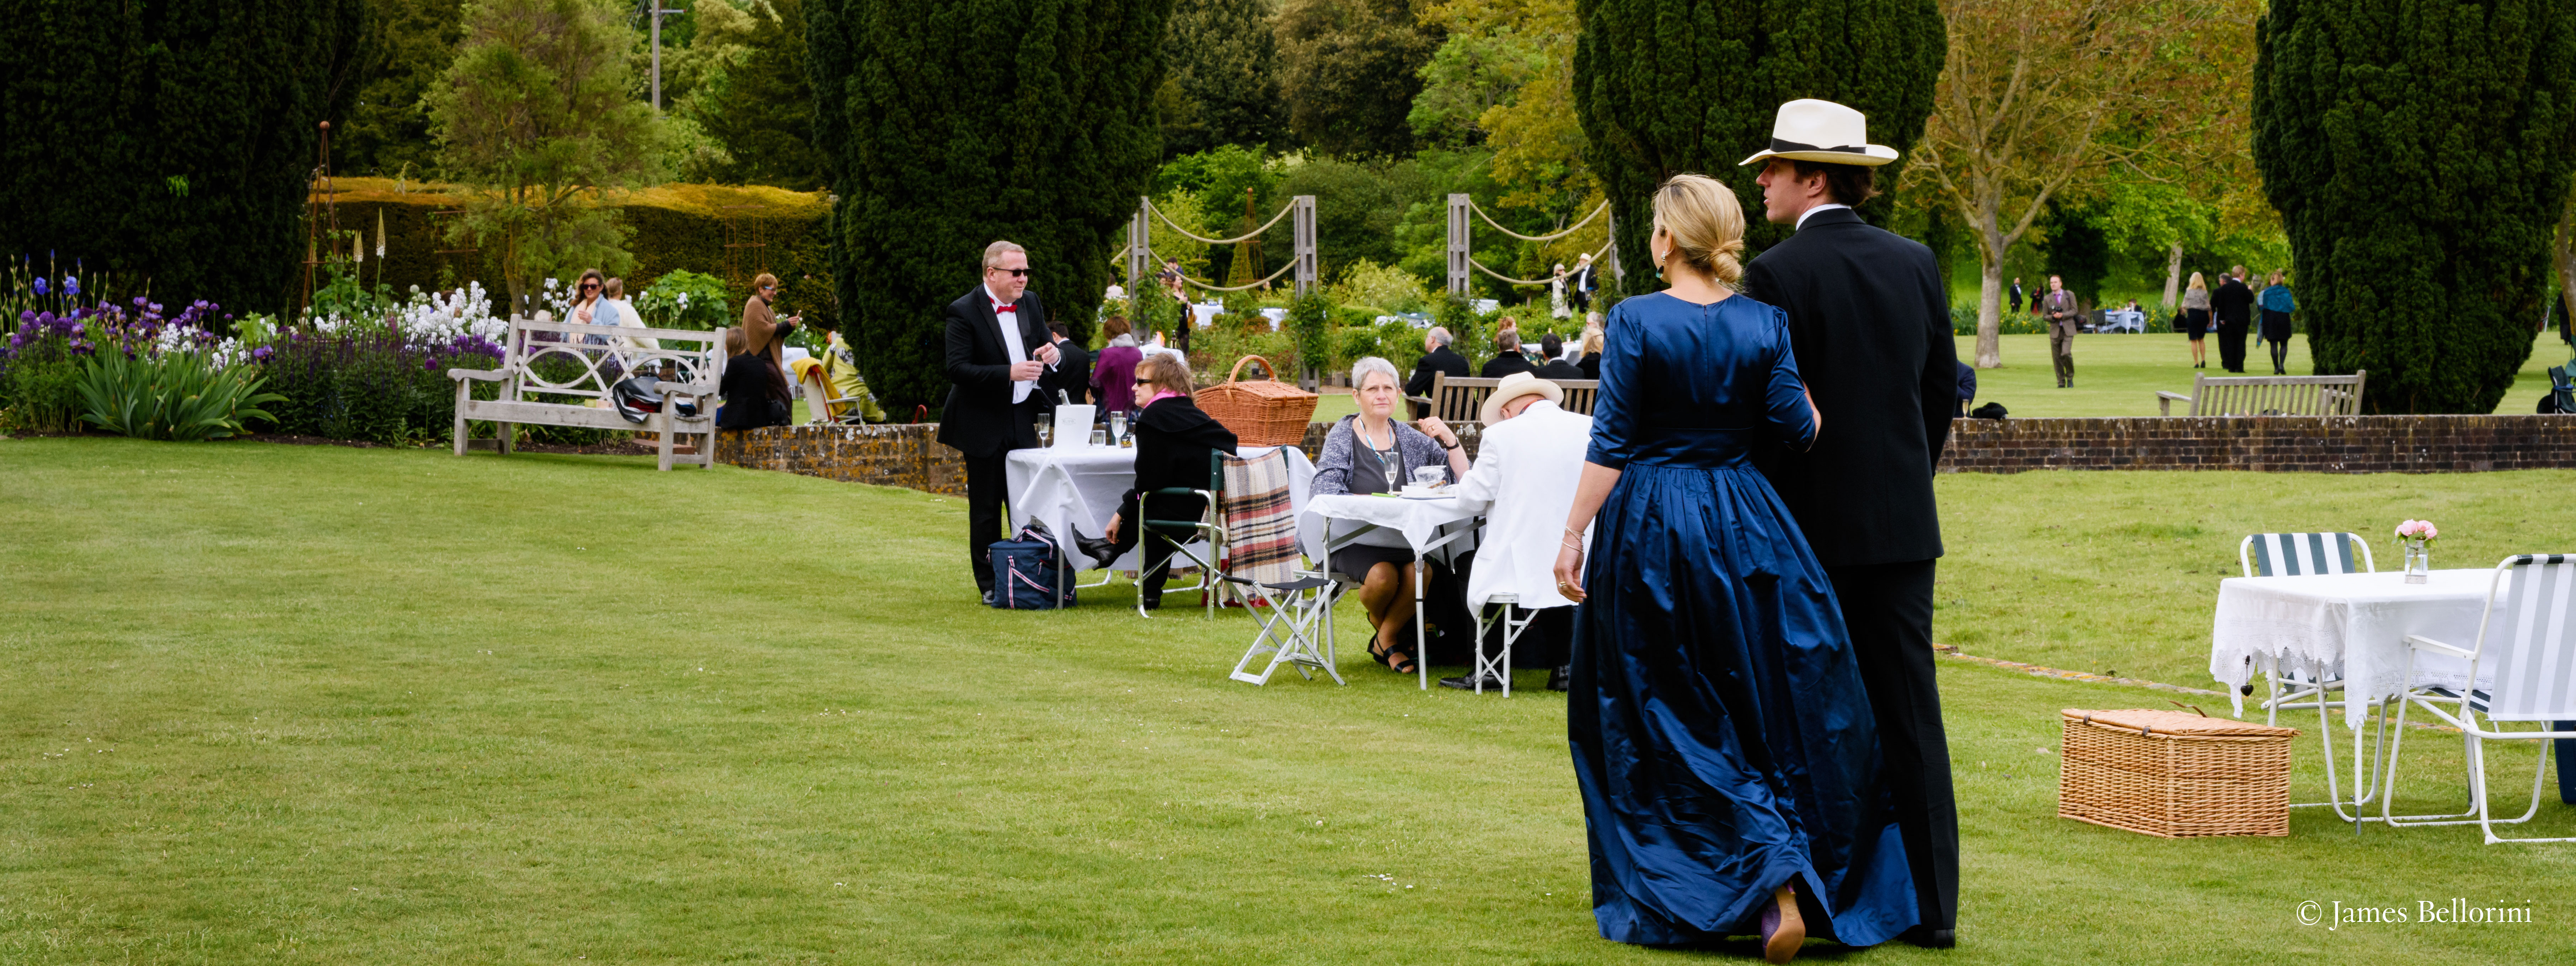 Guests enjoying their day at the Glyndebourne festival in 2019